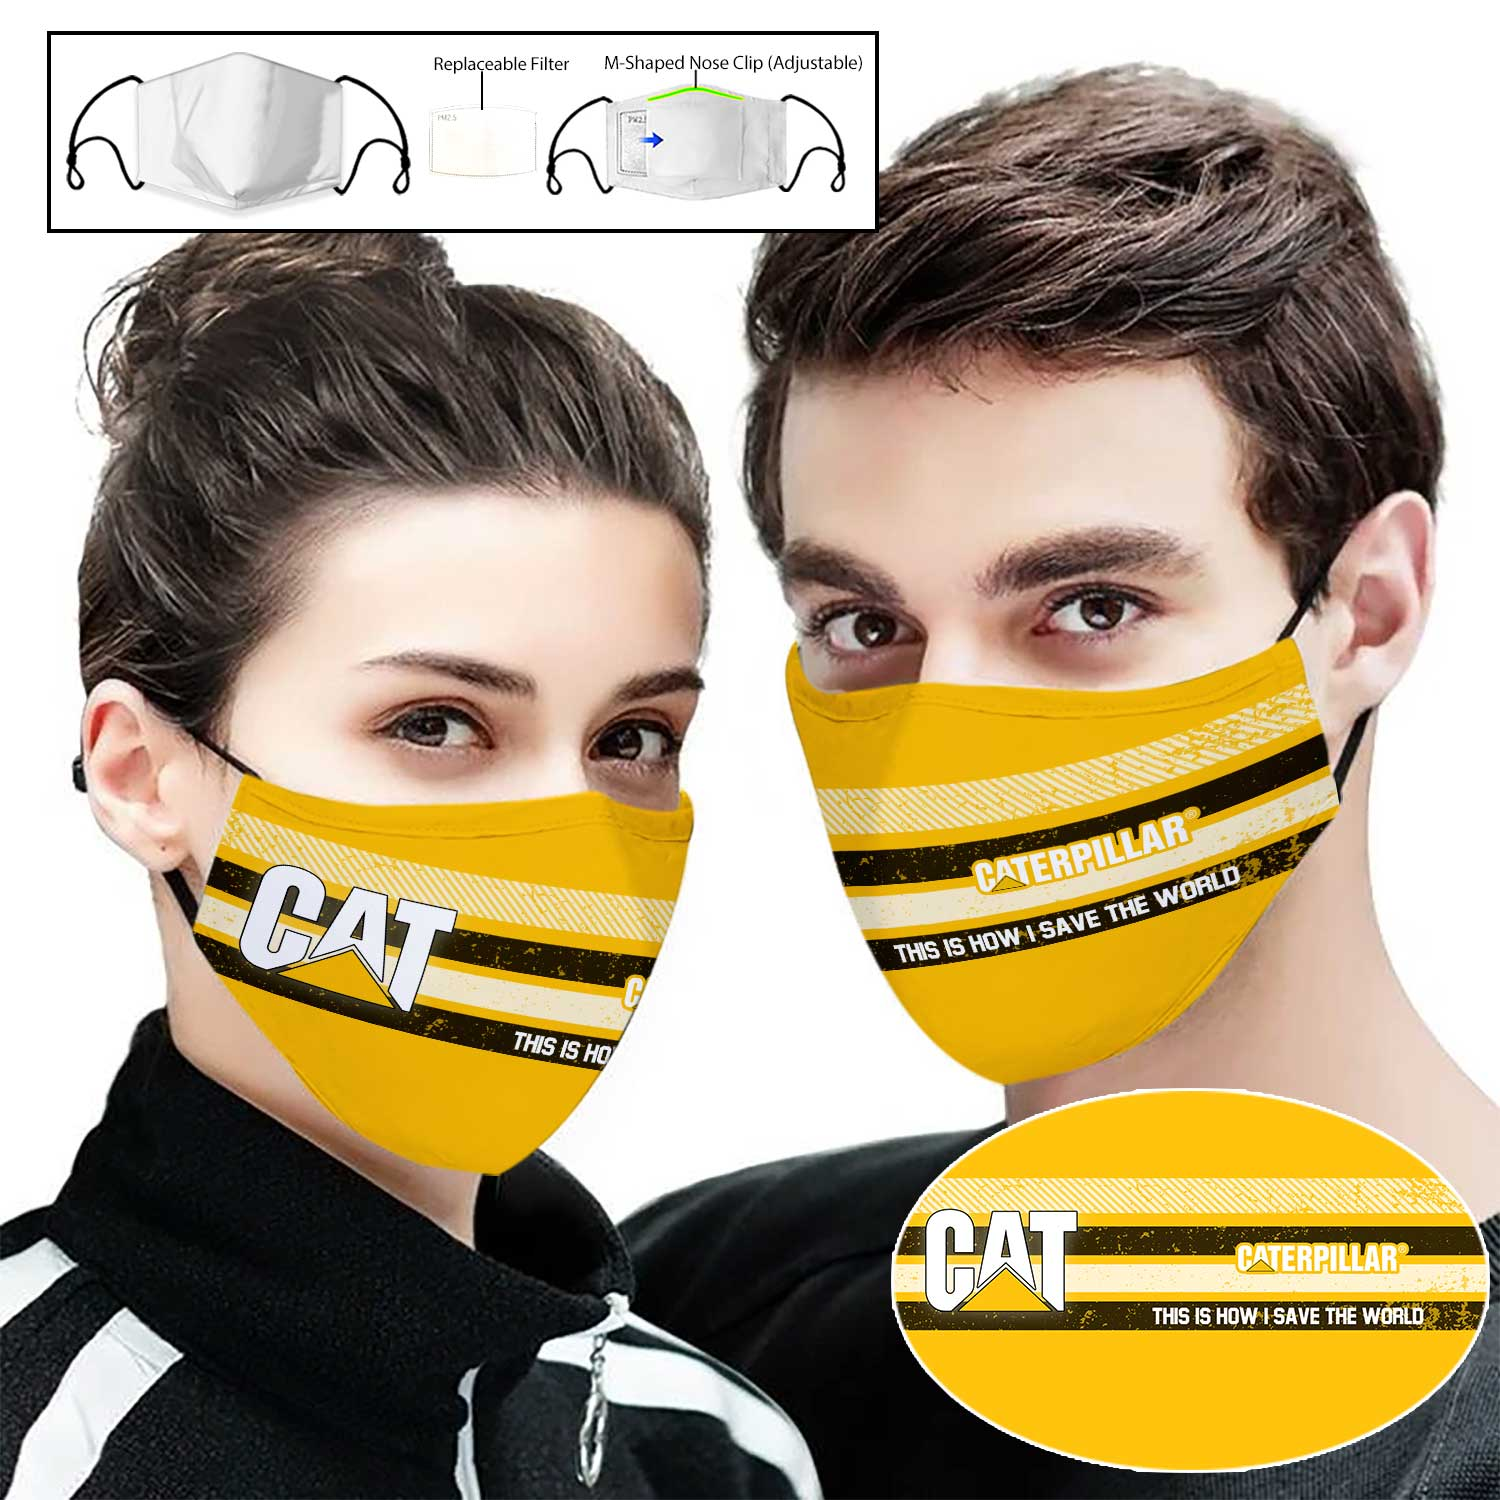 Caterpillar inc this is how i save the world full printing face mask 1